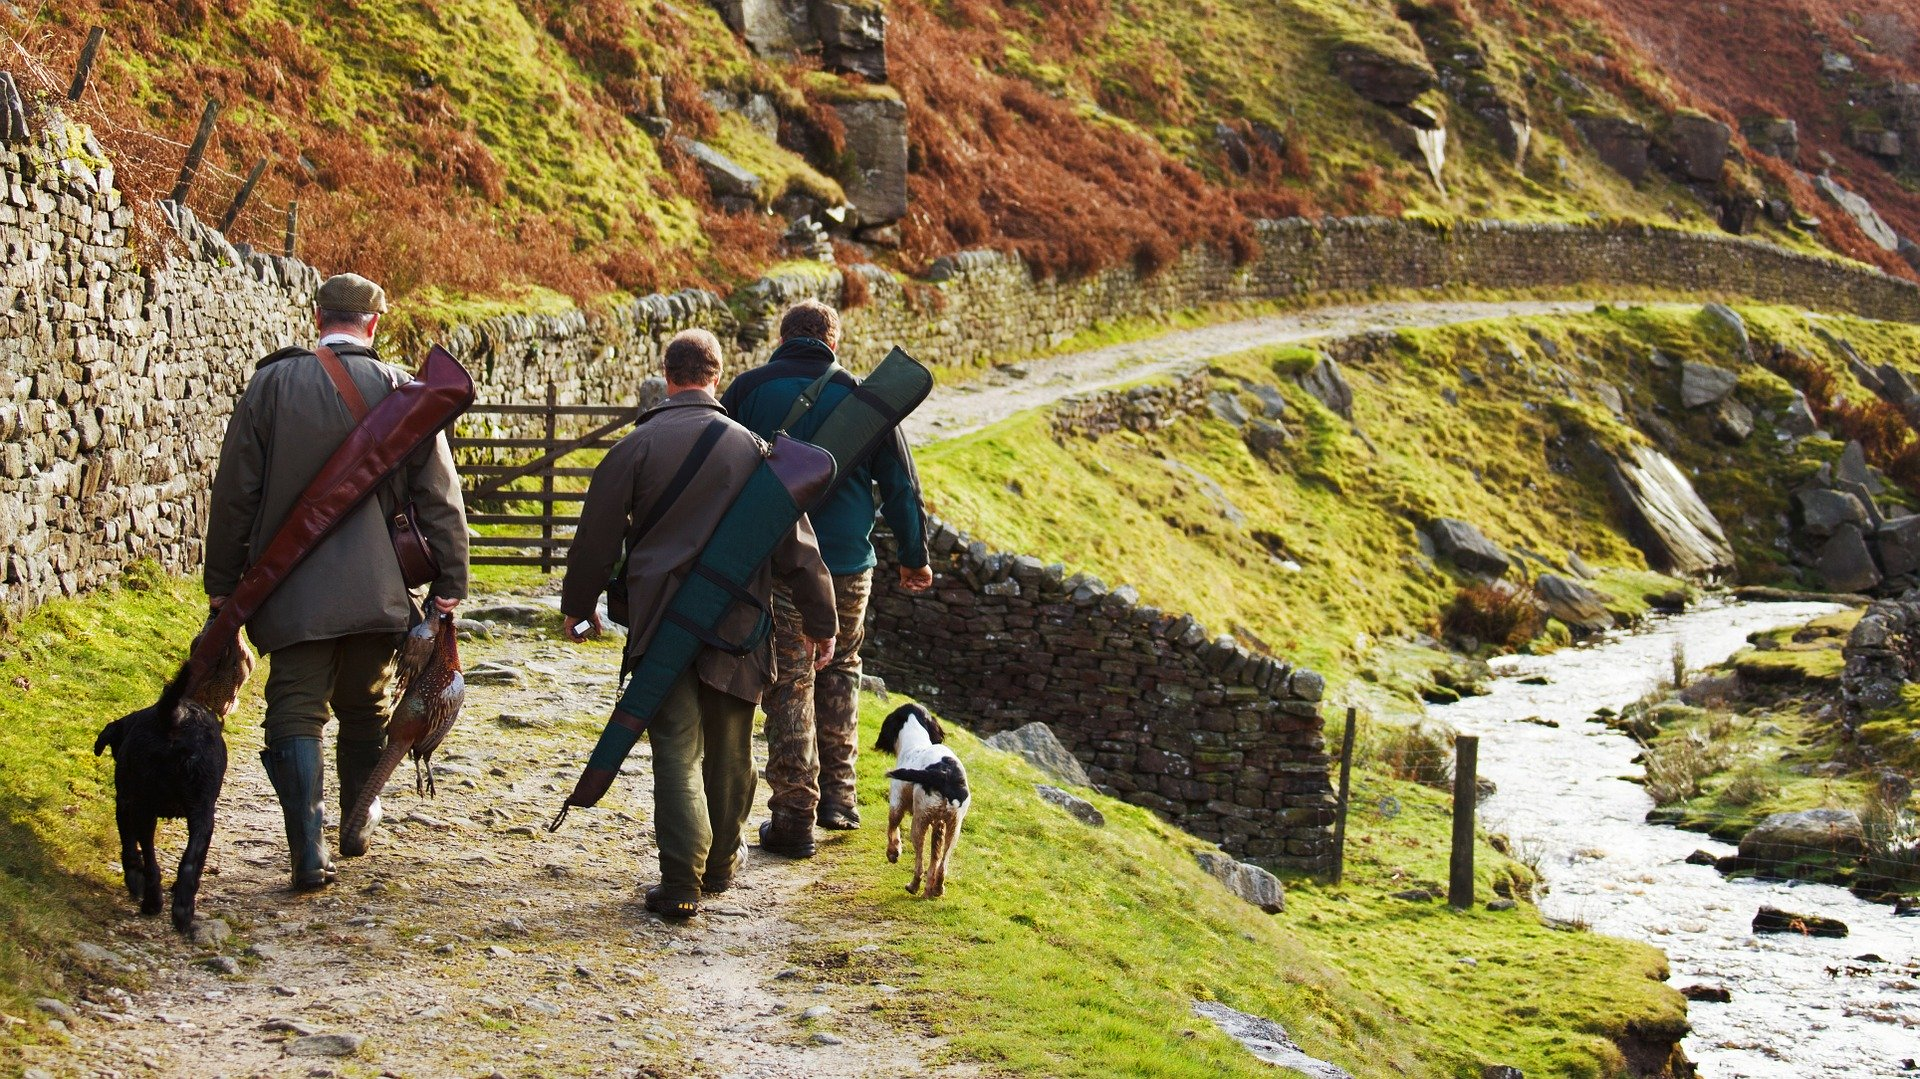 Hunting in England exempt from 'rule of six' Covid-19 restrictions